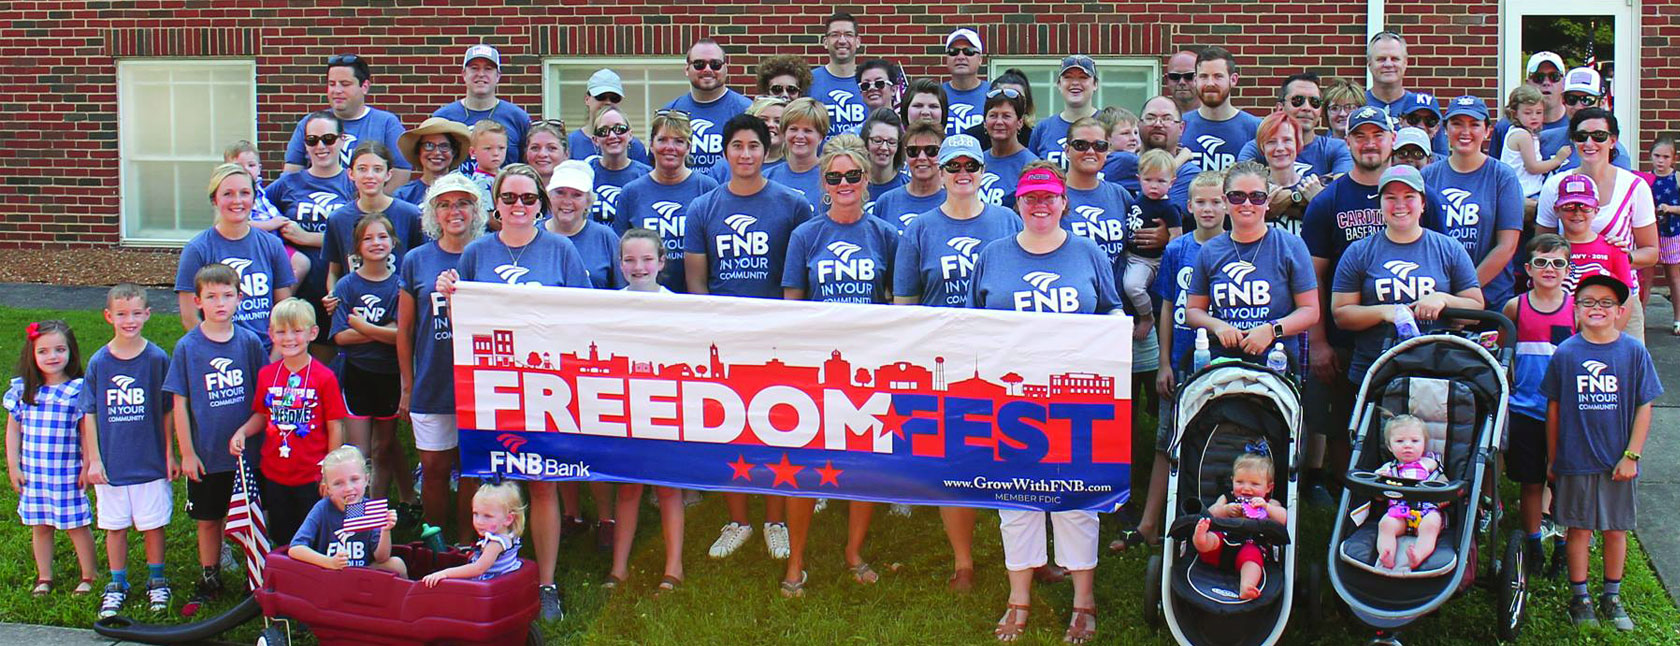 Freedom Fest FNB Bank Kentucky sign held up by many people